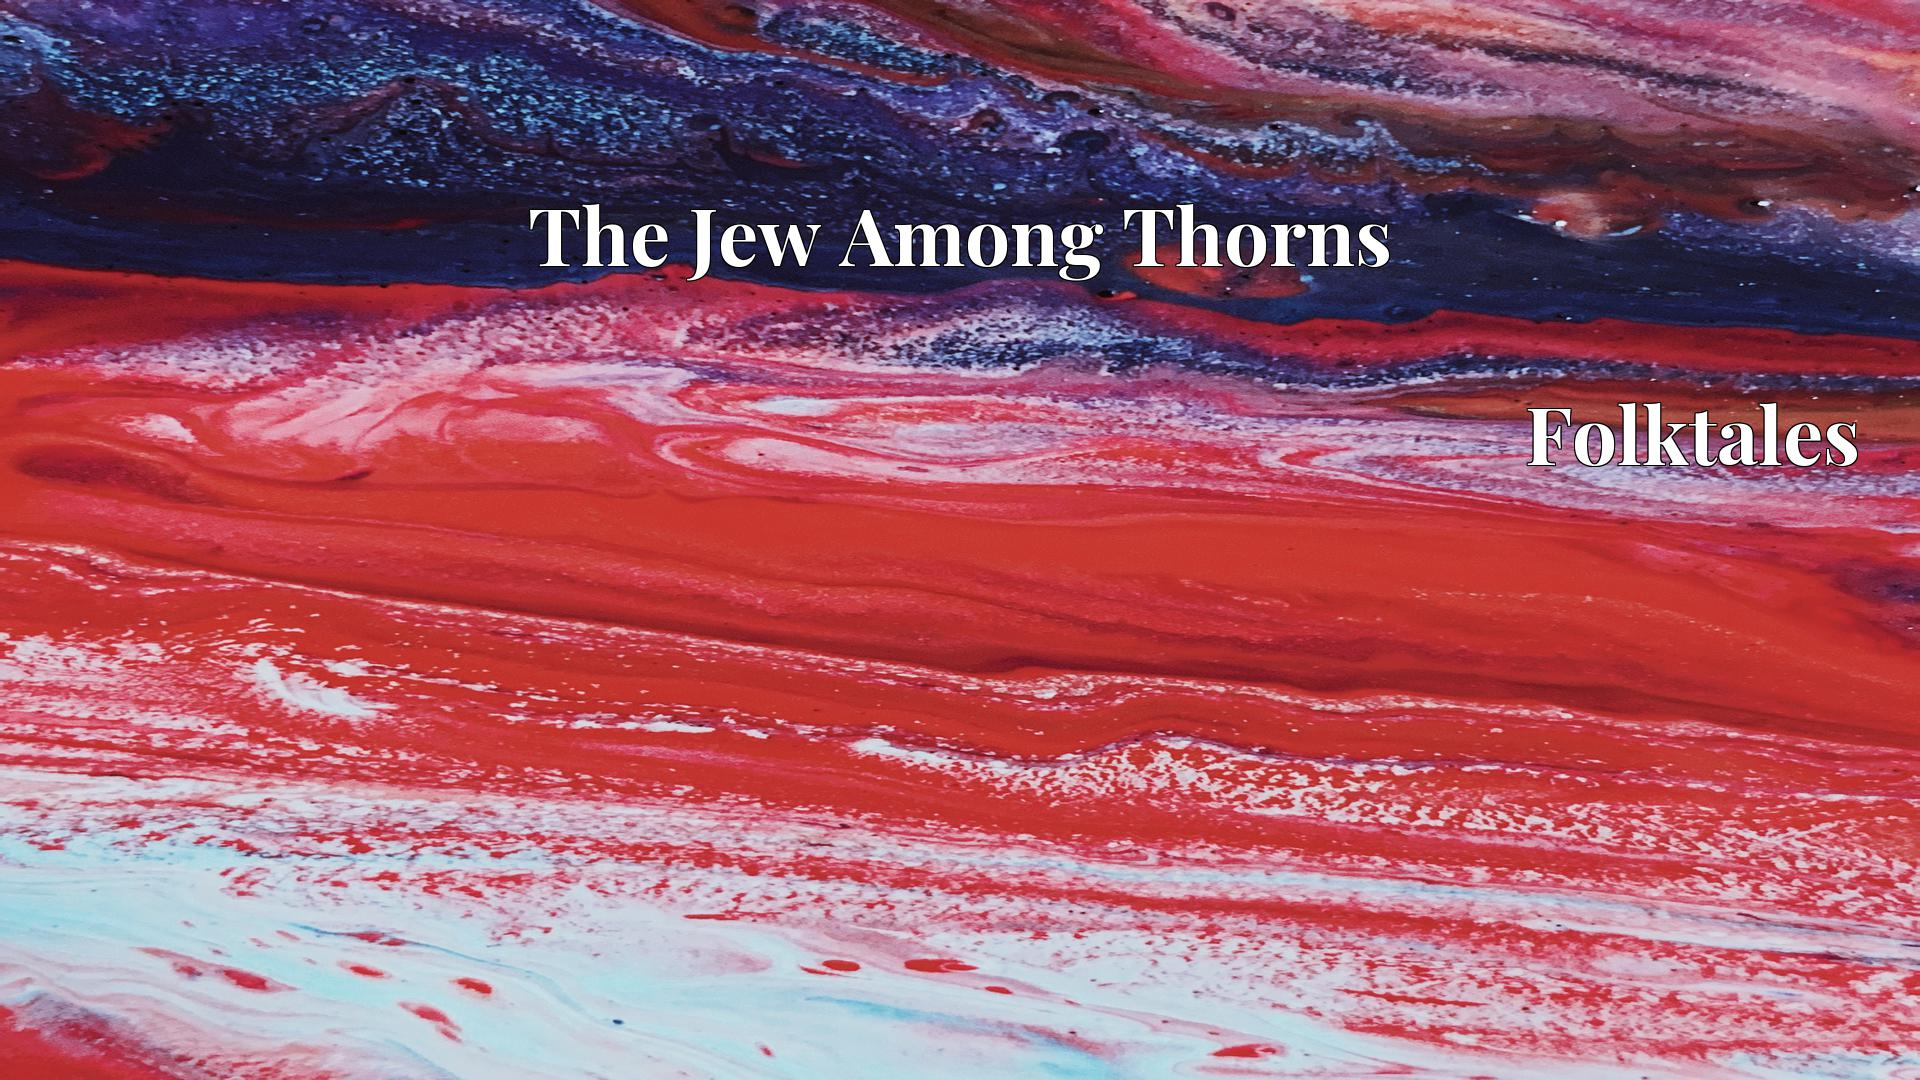 The Jew Among Thorns - Folktales